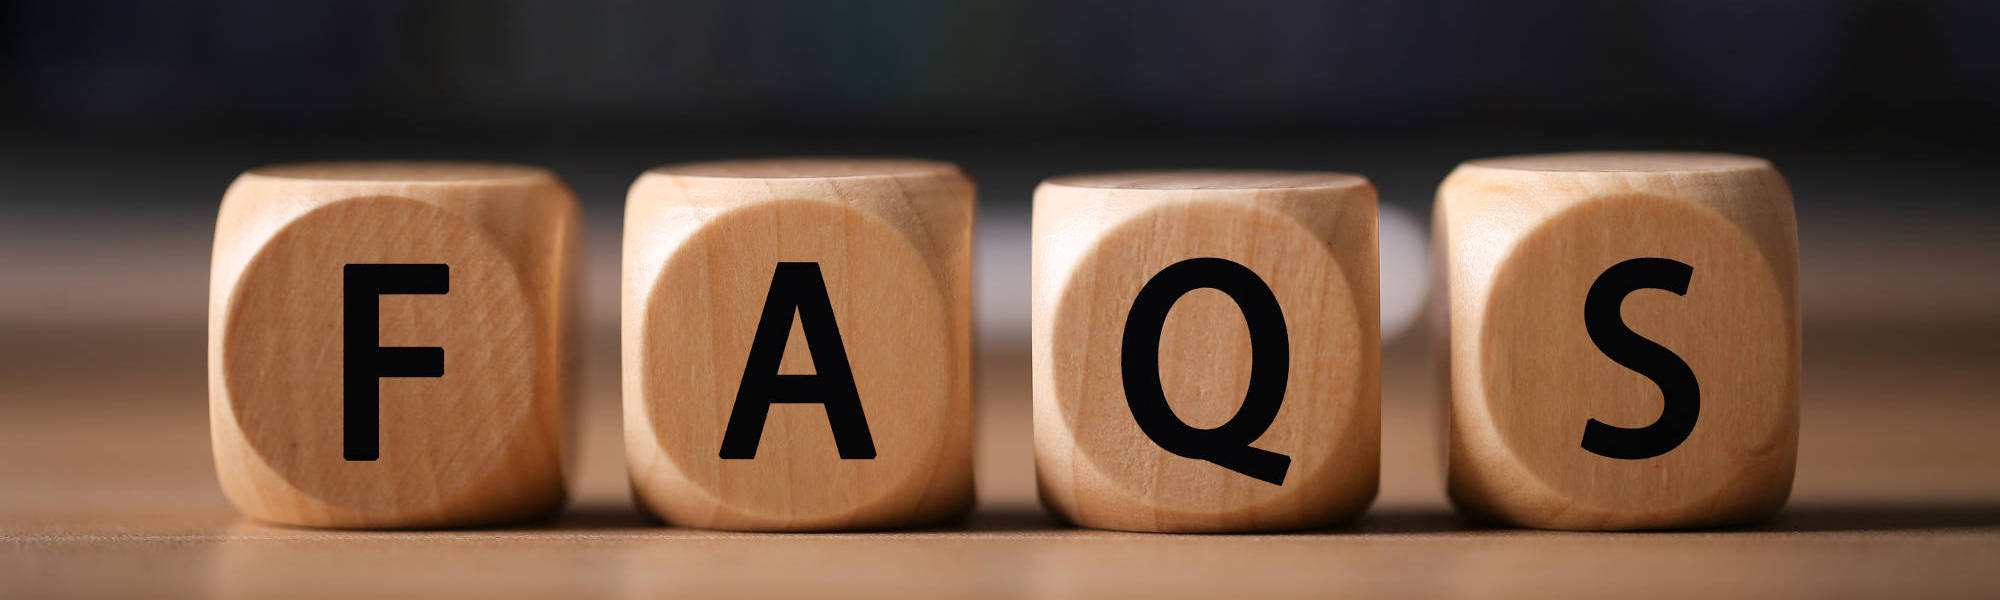 A photo of wooden blocks spelling out F-A-Q-S linking to the page section about frequently asked questions